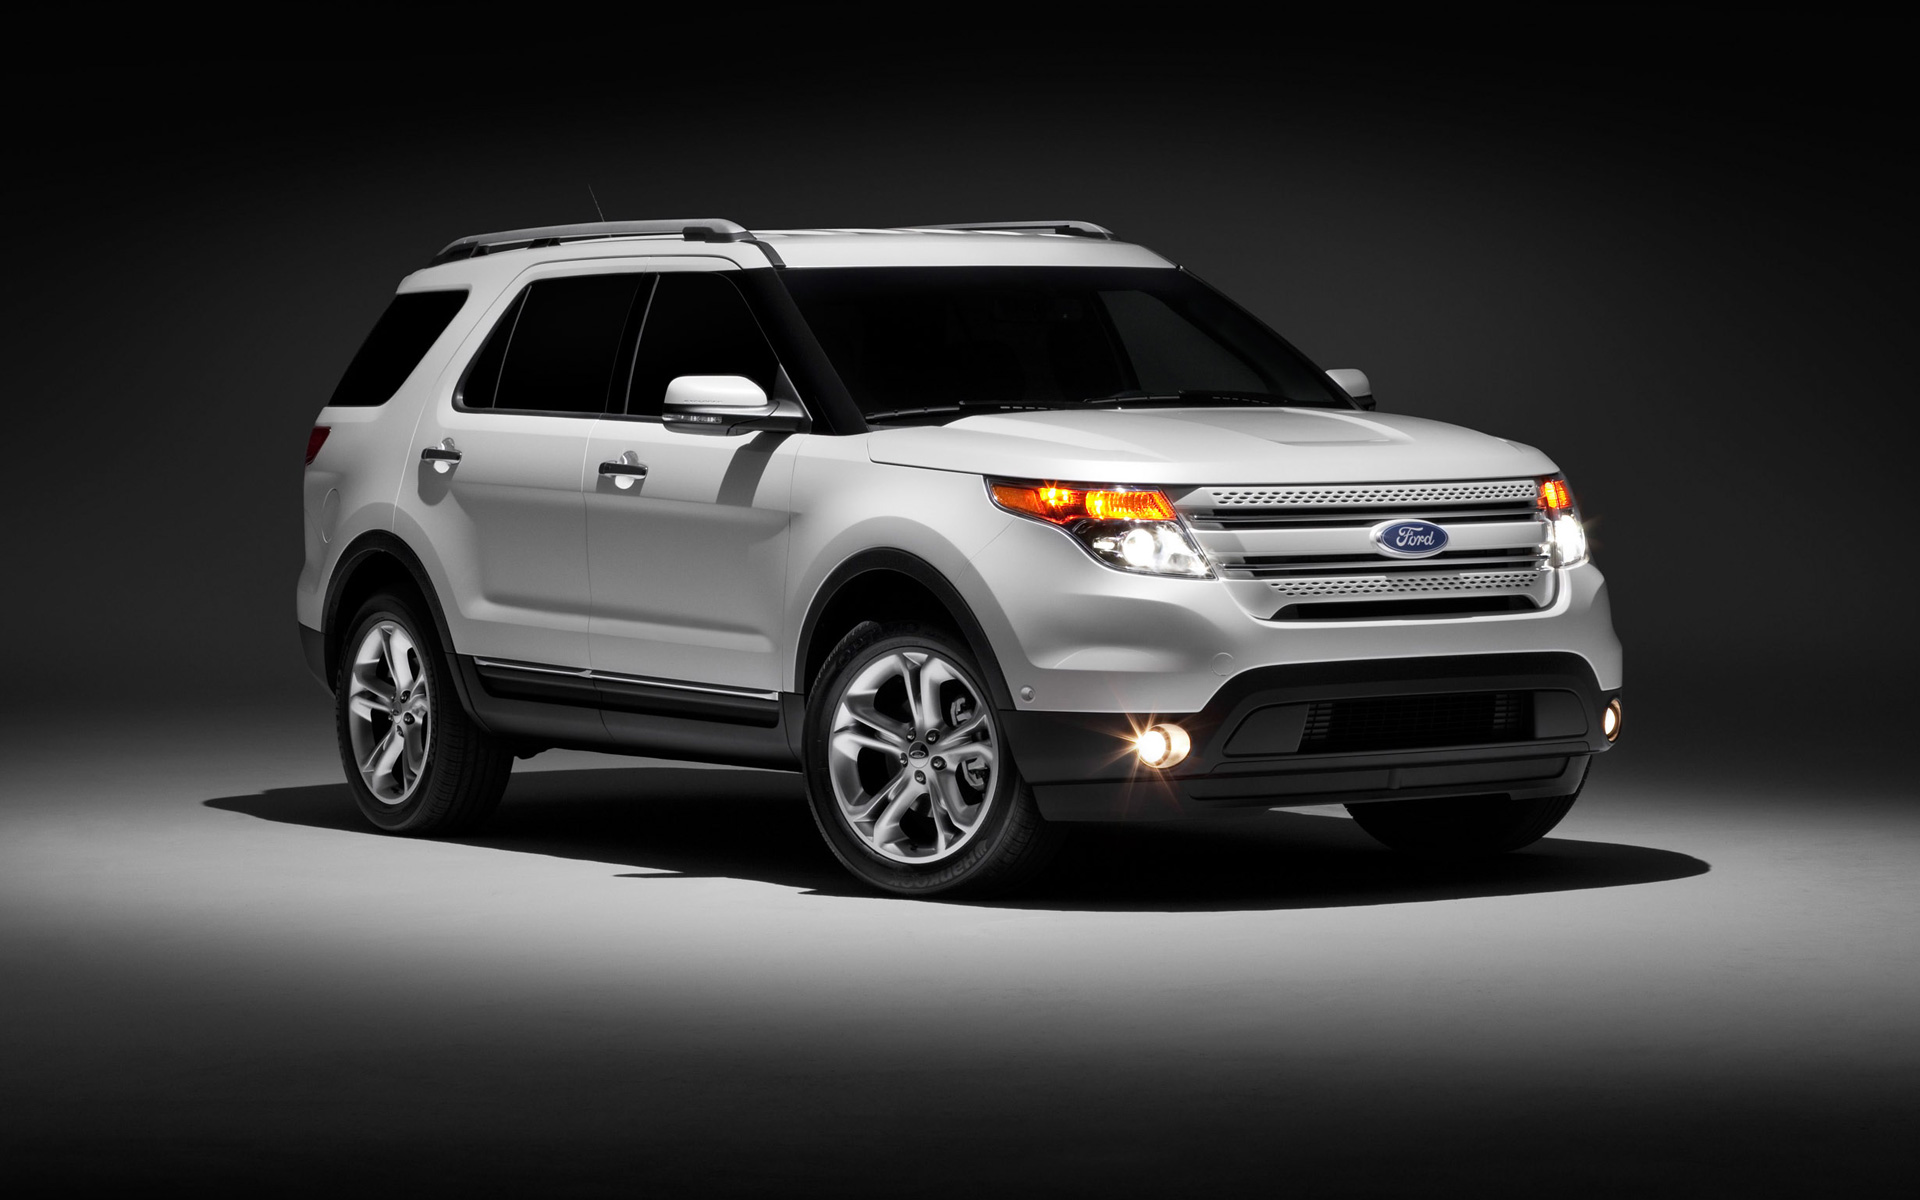 Ford XLT 2011 photo - 2